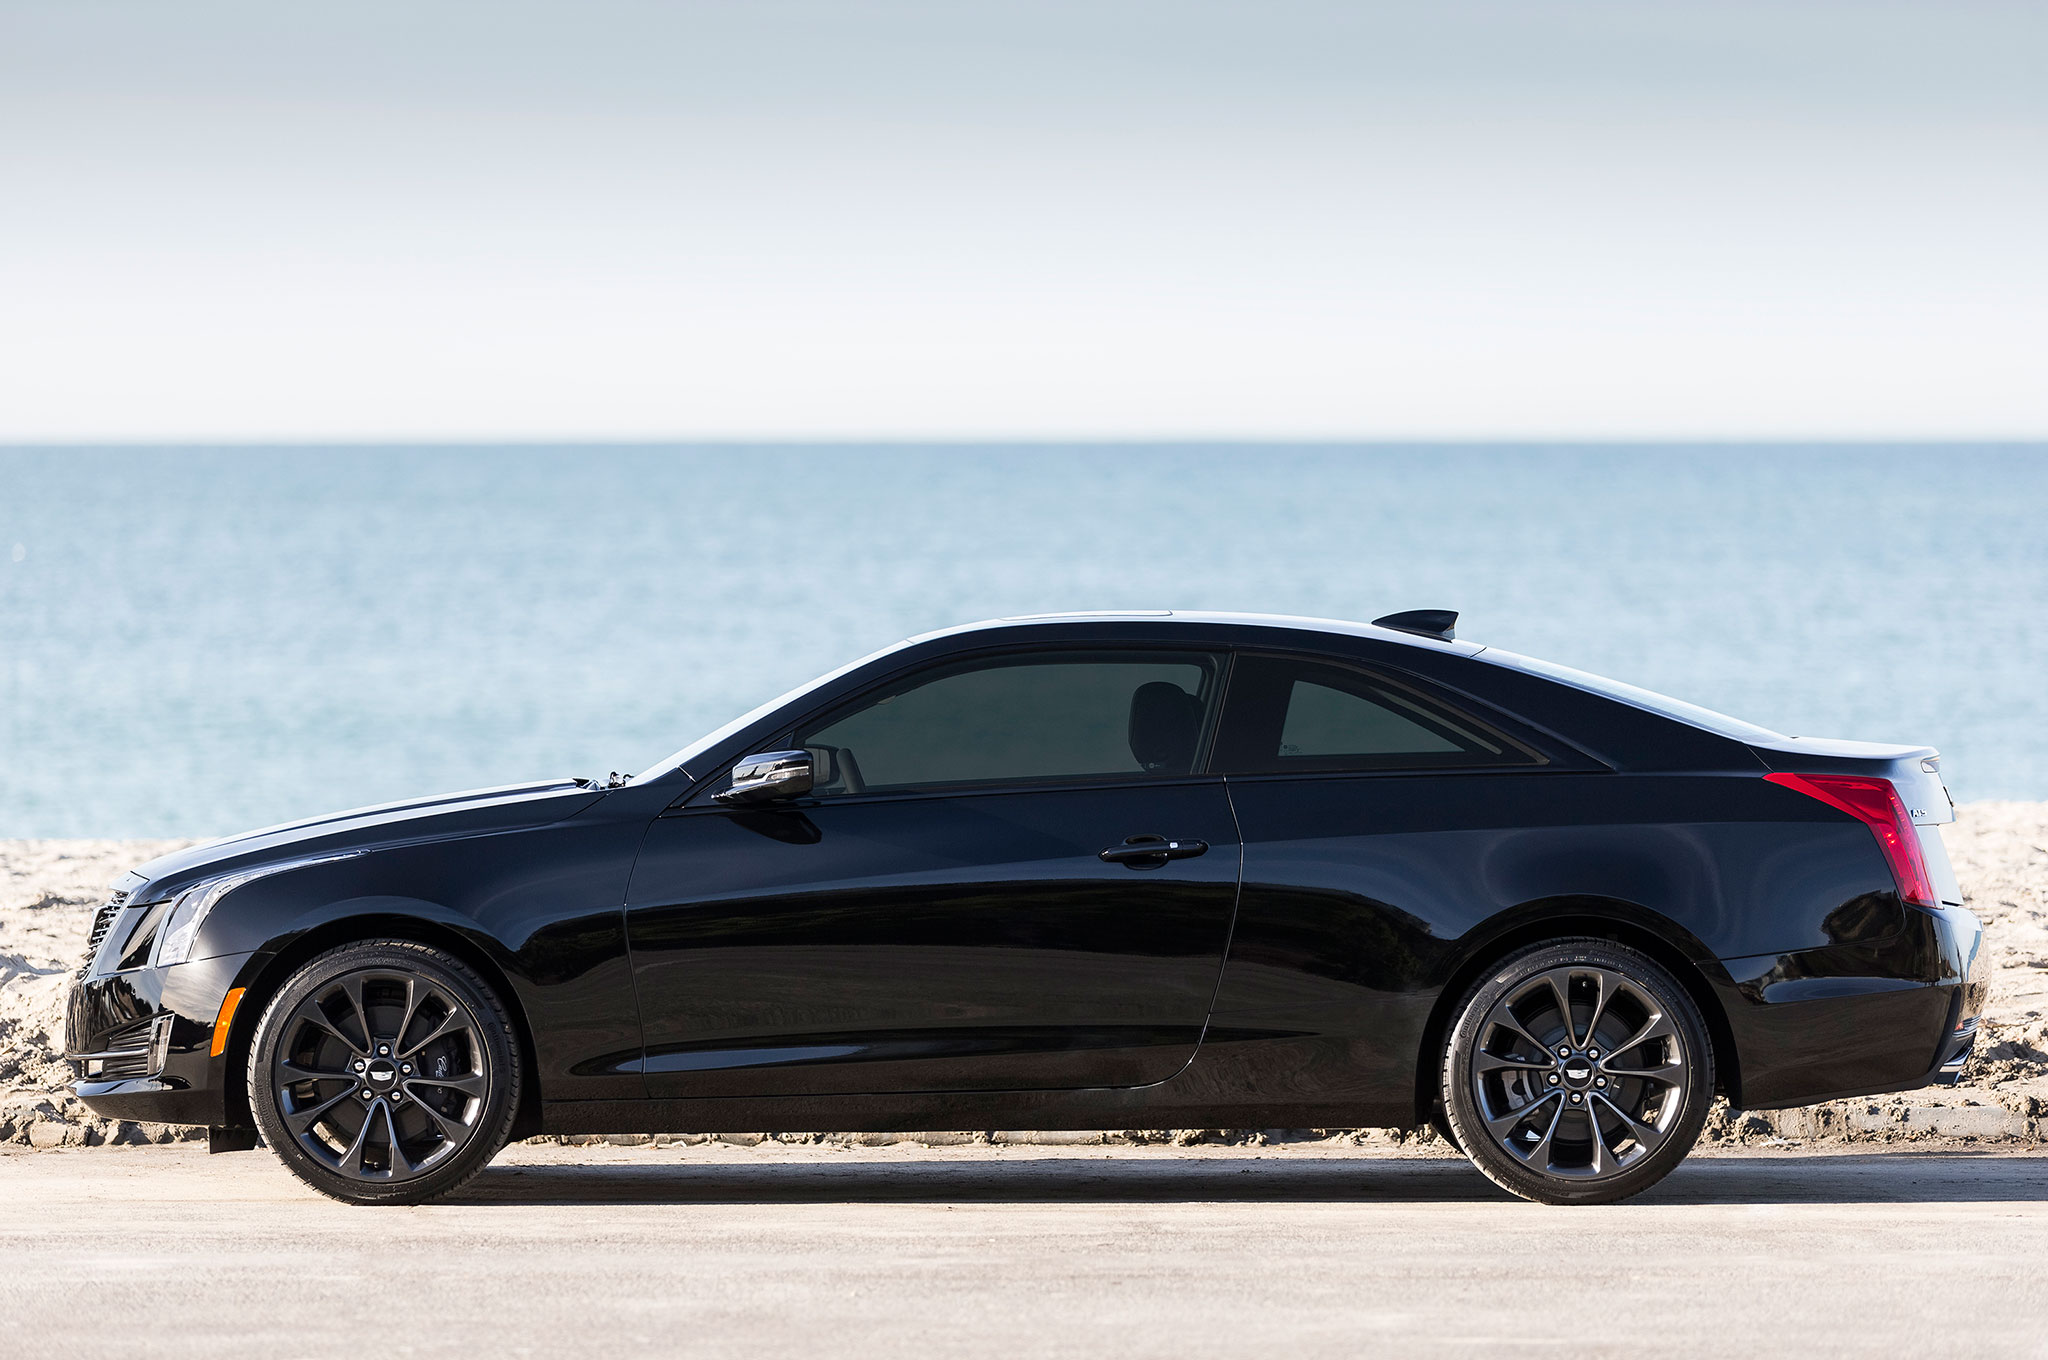 Cadillac Ats Rims >> 2016 Cadillac ATS and CTS Add Black Chrome Package | Automobile Magazine